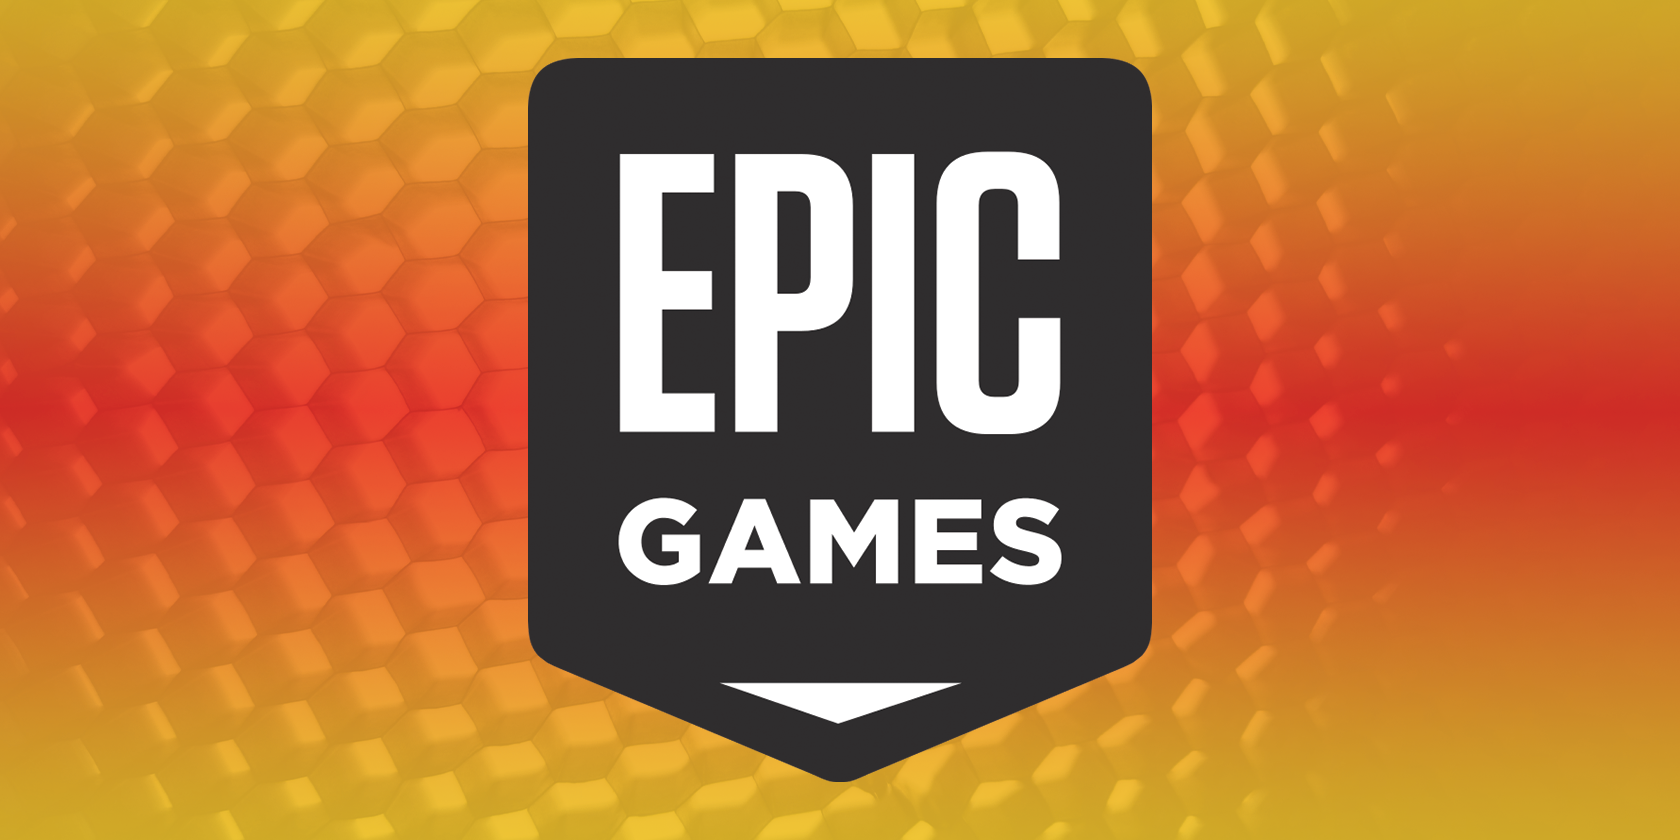 Epic Games Invades the Art Scene With Acquisition of ArtStation